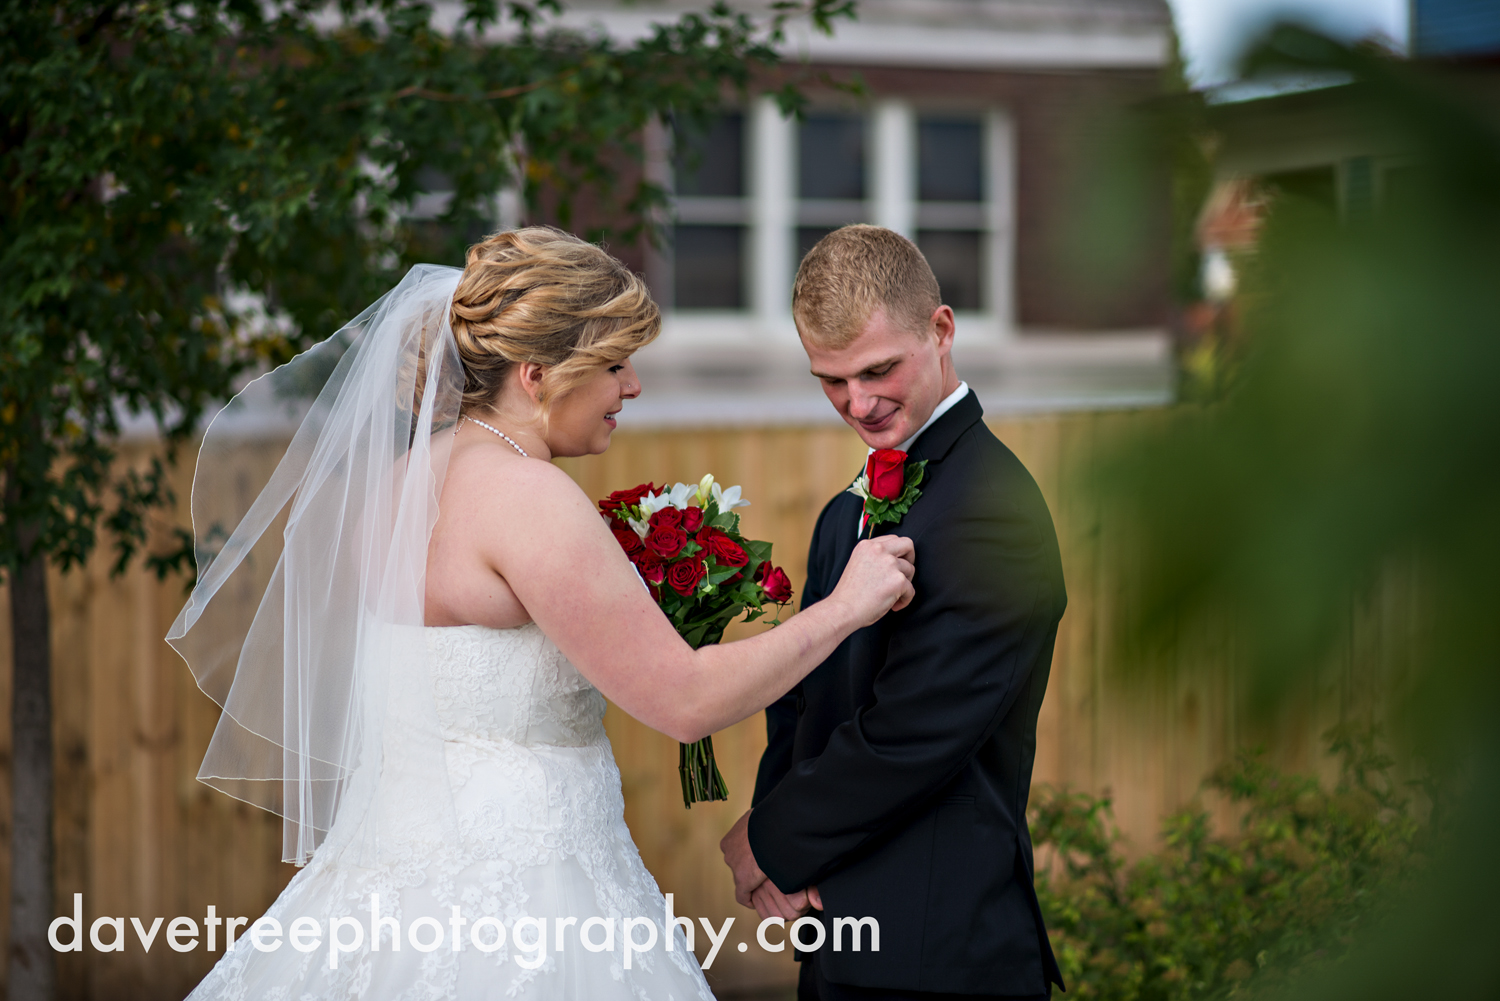 holland_wedding_photographer_76.jpg